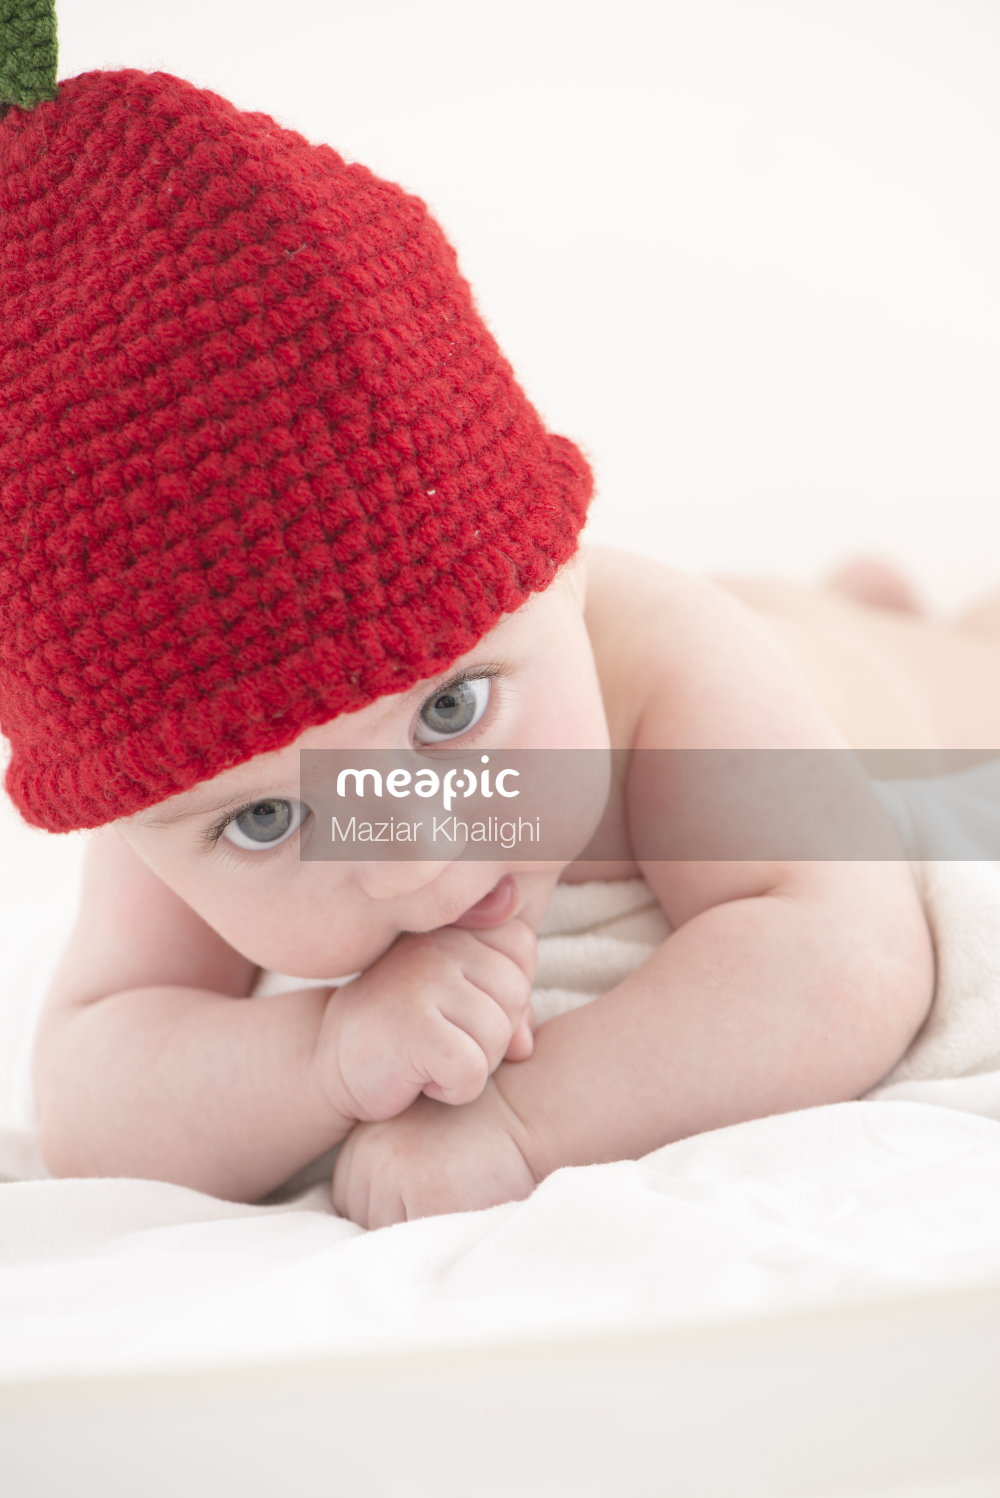 Baby Wearing A Hat Stock Photo · Meapic